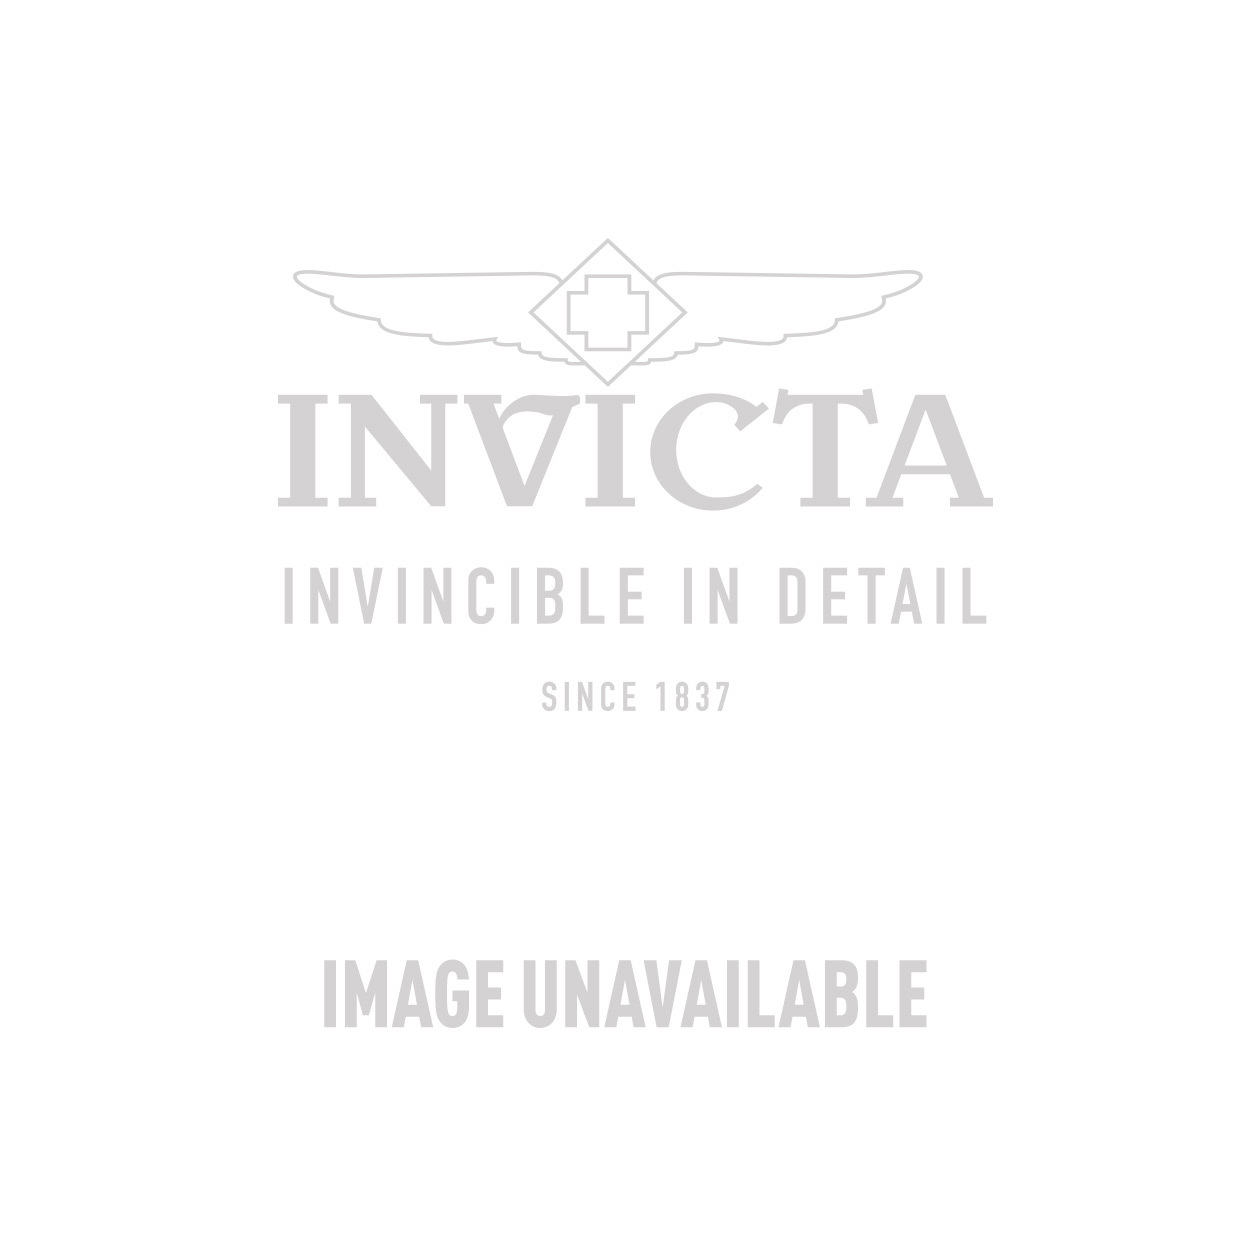 Invicta Speedway Swiss Movement Quartz Watch - Black, Stainless Steel case with Black tone Leather band - Model 19298